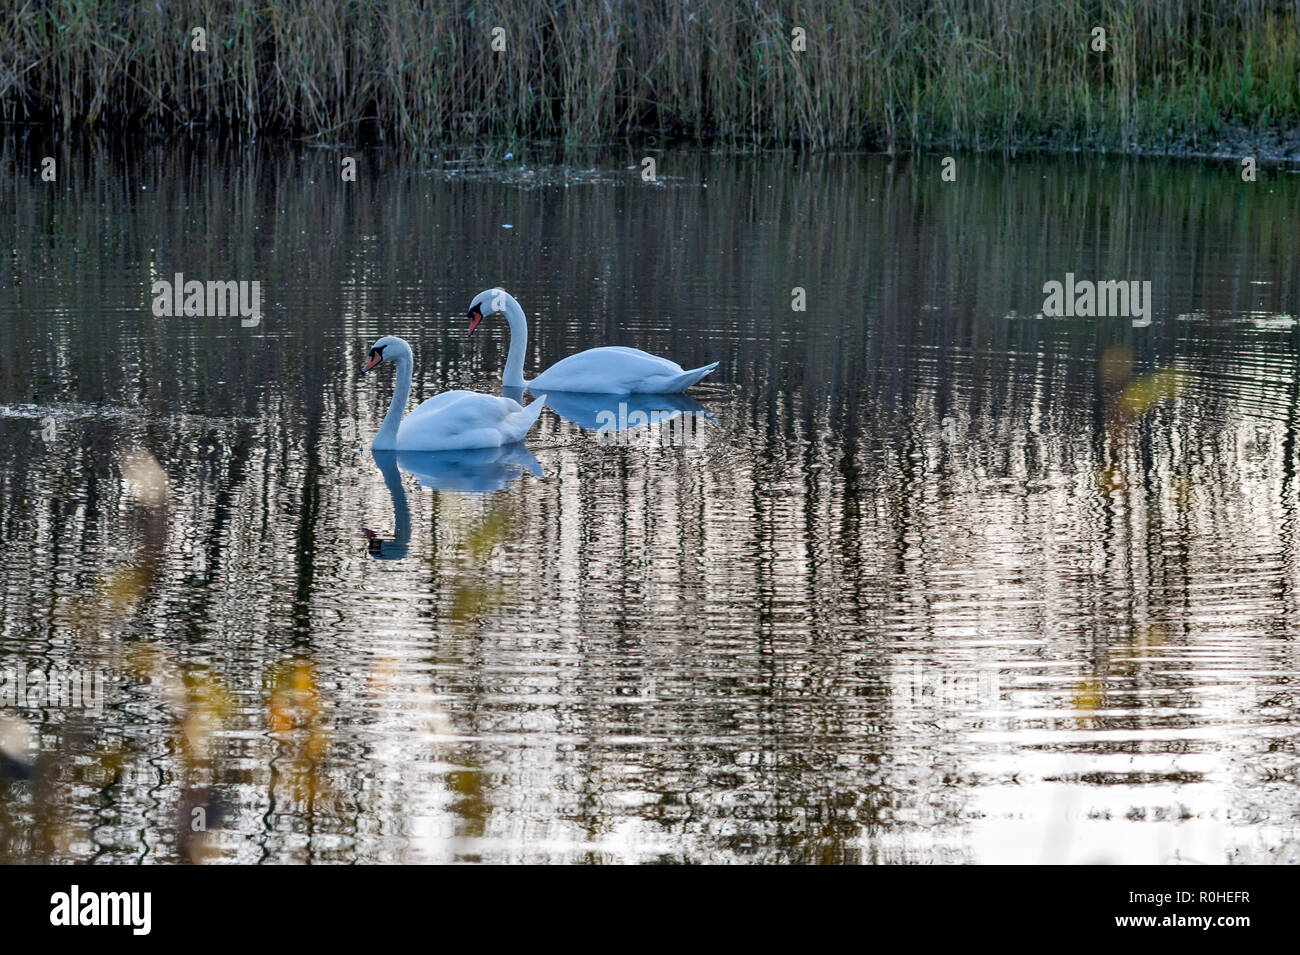 Two mute swans, Cygnus olor on a lake, late afternoon with reflections in the water. Stock Photo